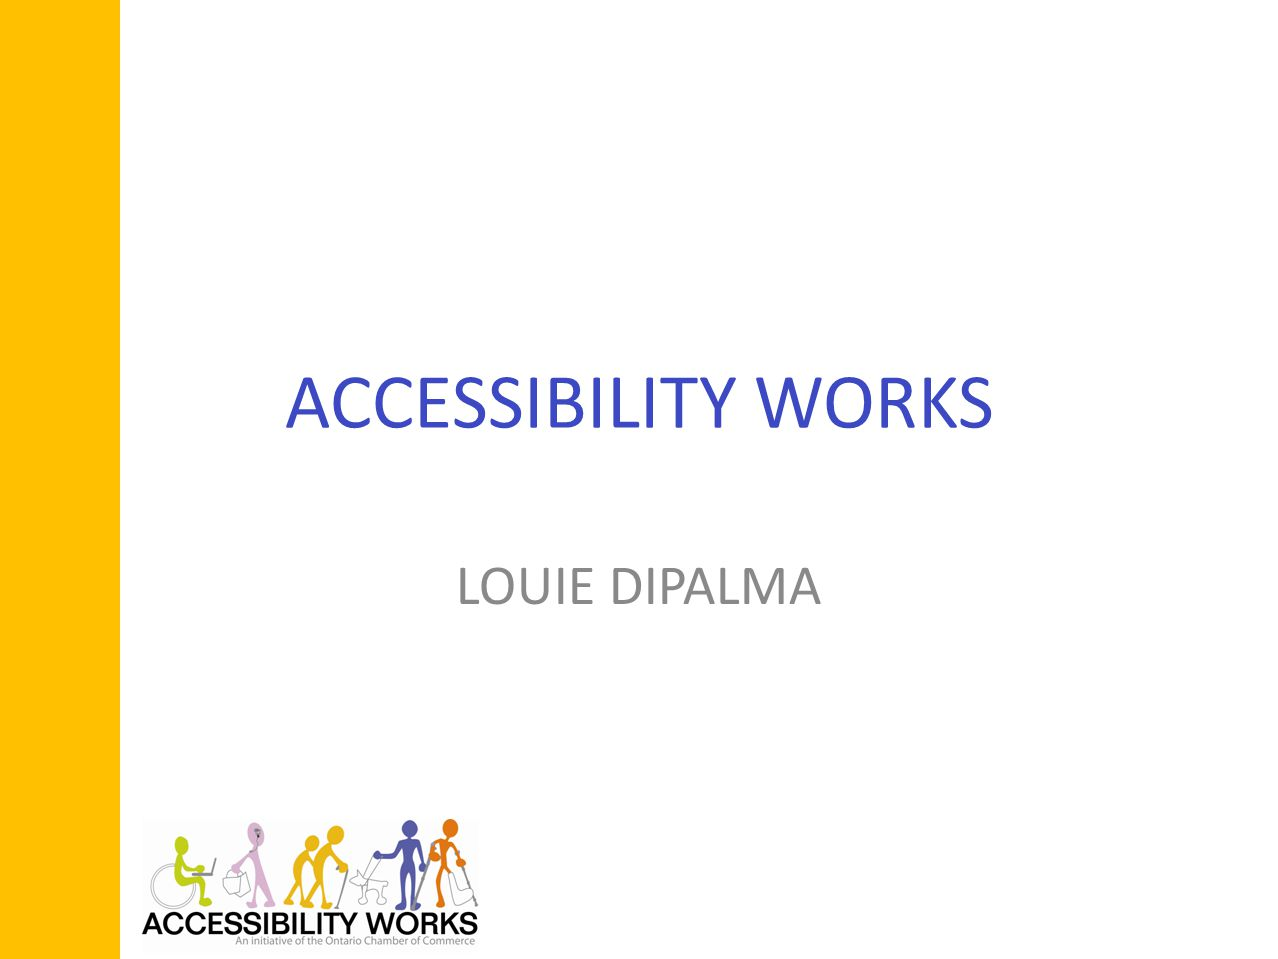 ACCESSIBILITY WORKS LOUIE DIPALMA